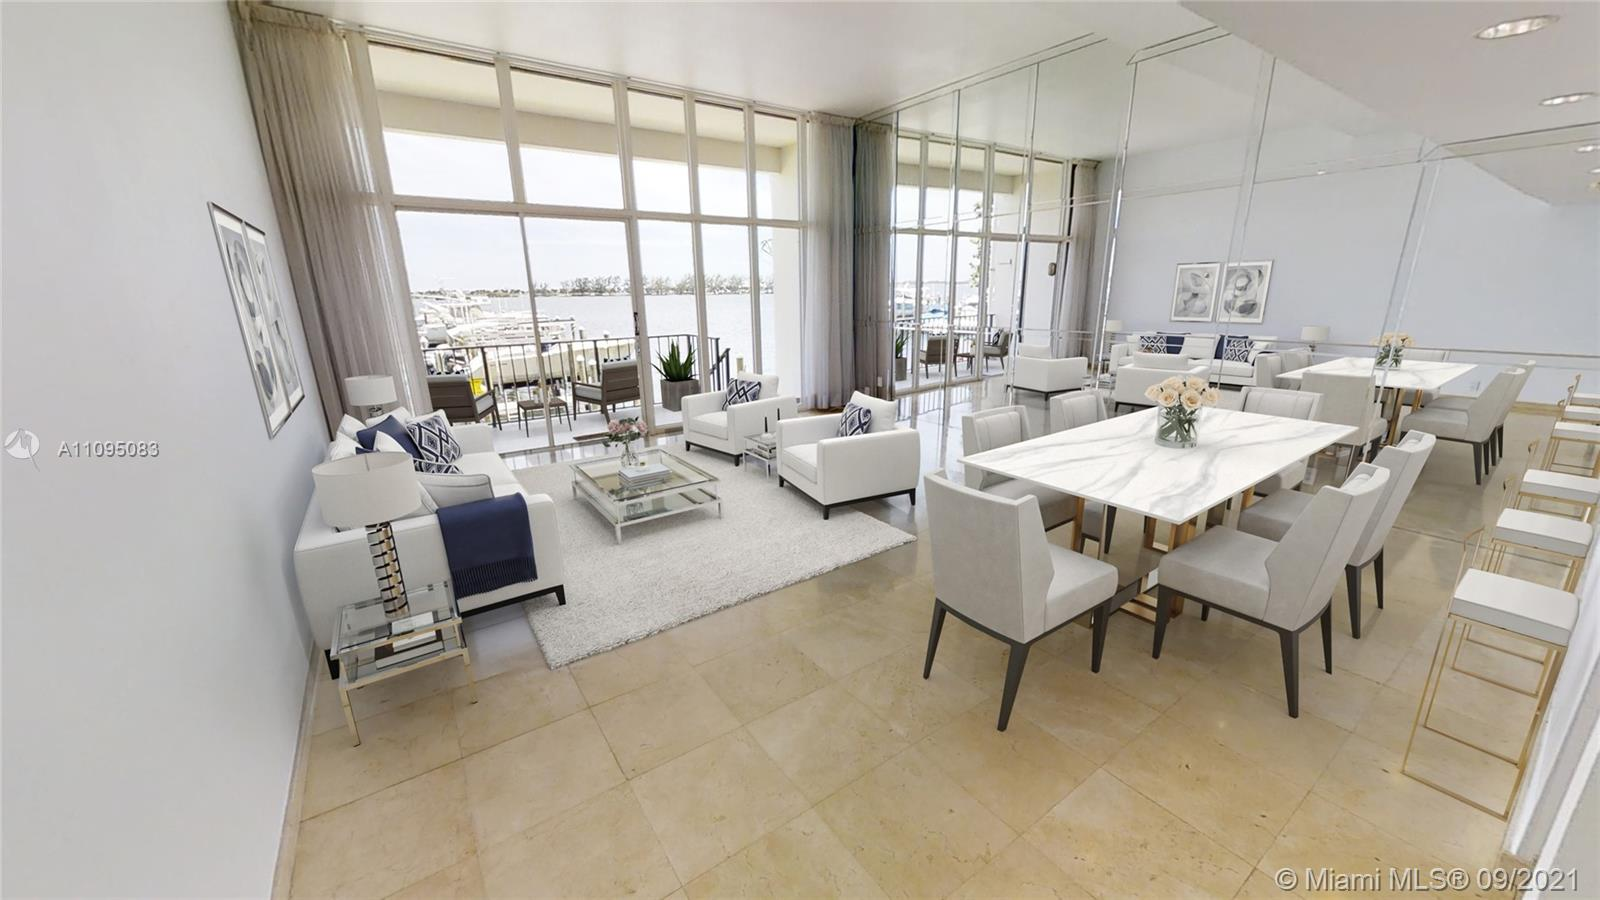 This Beautiful, Unique townhouse with amazing Biscayne Bay views and Direct Ocean Access. Enjoy the Sophisticated Brickell Lifestyle without the inconvenience of a high-rise. Unit comes with a 36 FT boat slip foot steps from your own home. A boaters Dream. Modern upgrades one would expect. Kitchen with quartz counter top. Primary bedroom walk-in closet. Floor to ceiling windows. Storm shutters.N new A/C. 2 private covered parking spaces in front of TownHouse. A home living, with luxurious condo amenities. 24 hour security, valet, 2 pools, spa, tennis courts, BBQ area, play ground, bay walkway, gym. Very secured community.  centrally located, walking distance to Mary Brickell Village, Financial Institutions. Easy access to airport, malls, south beach, Arena and much  more . A dream Home.